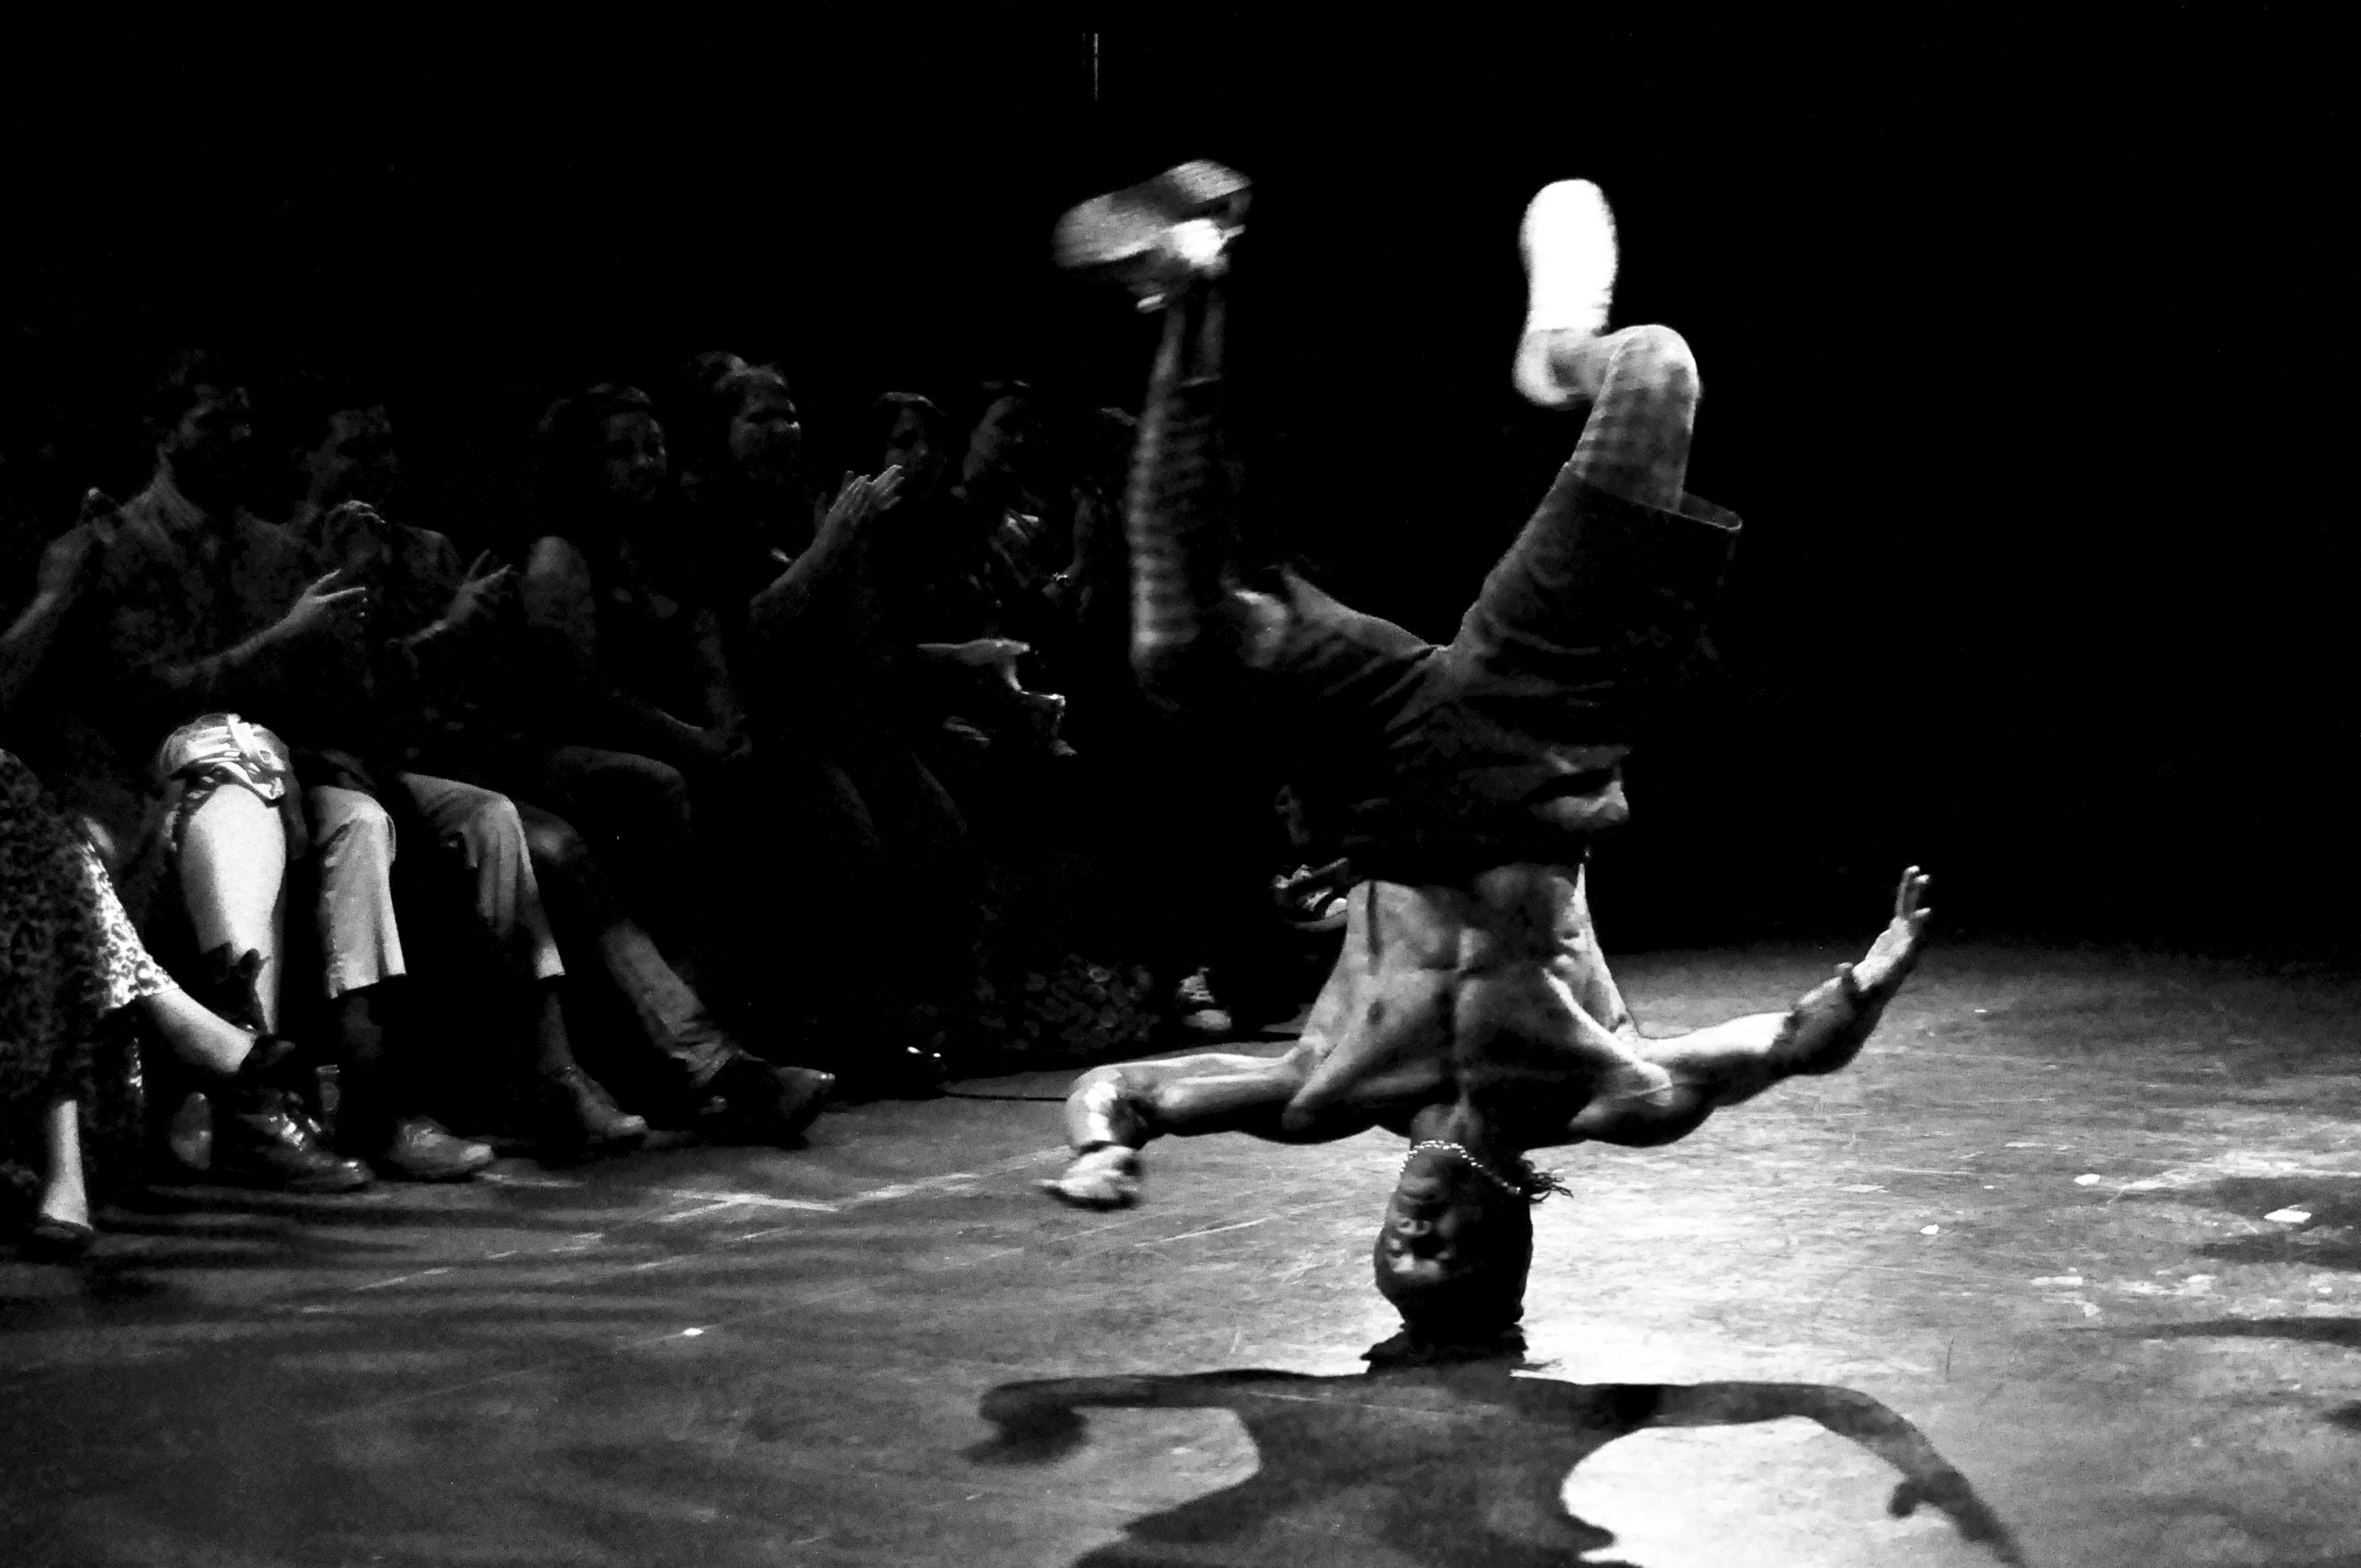 dance dancing hip hop rap street urban breakdance wallpaper background 4288x2848